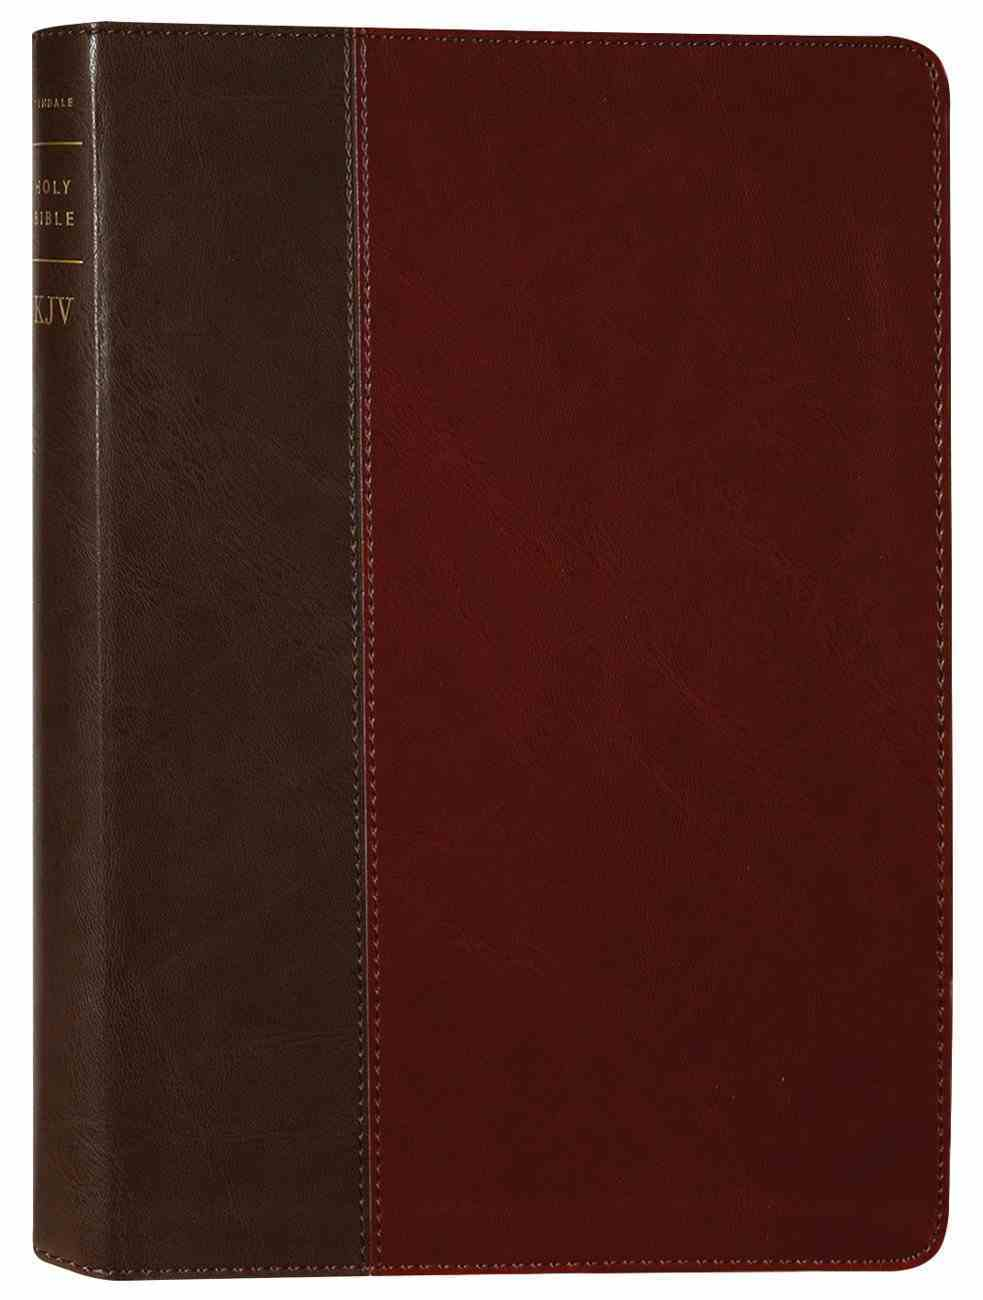 KJV Large Print Thinline Reference Bible Filament Enabled Edition Brown & Mahogany (Red Letter Edition) Imitation Leather